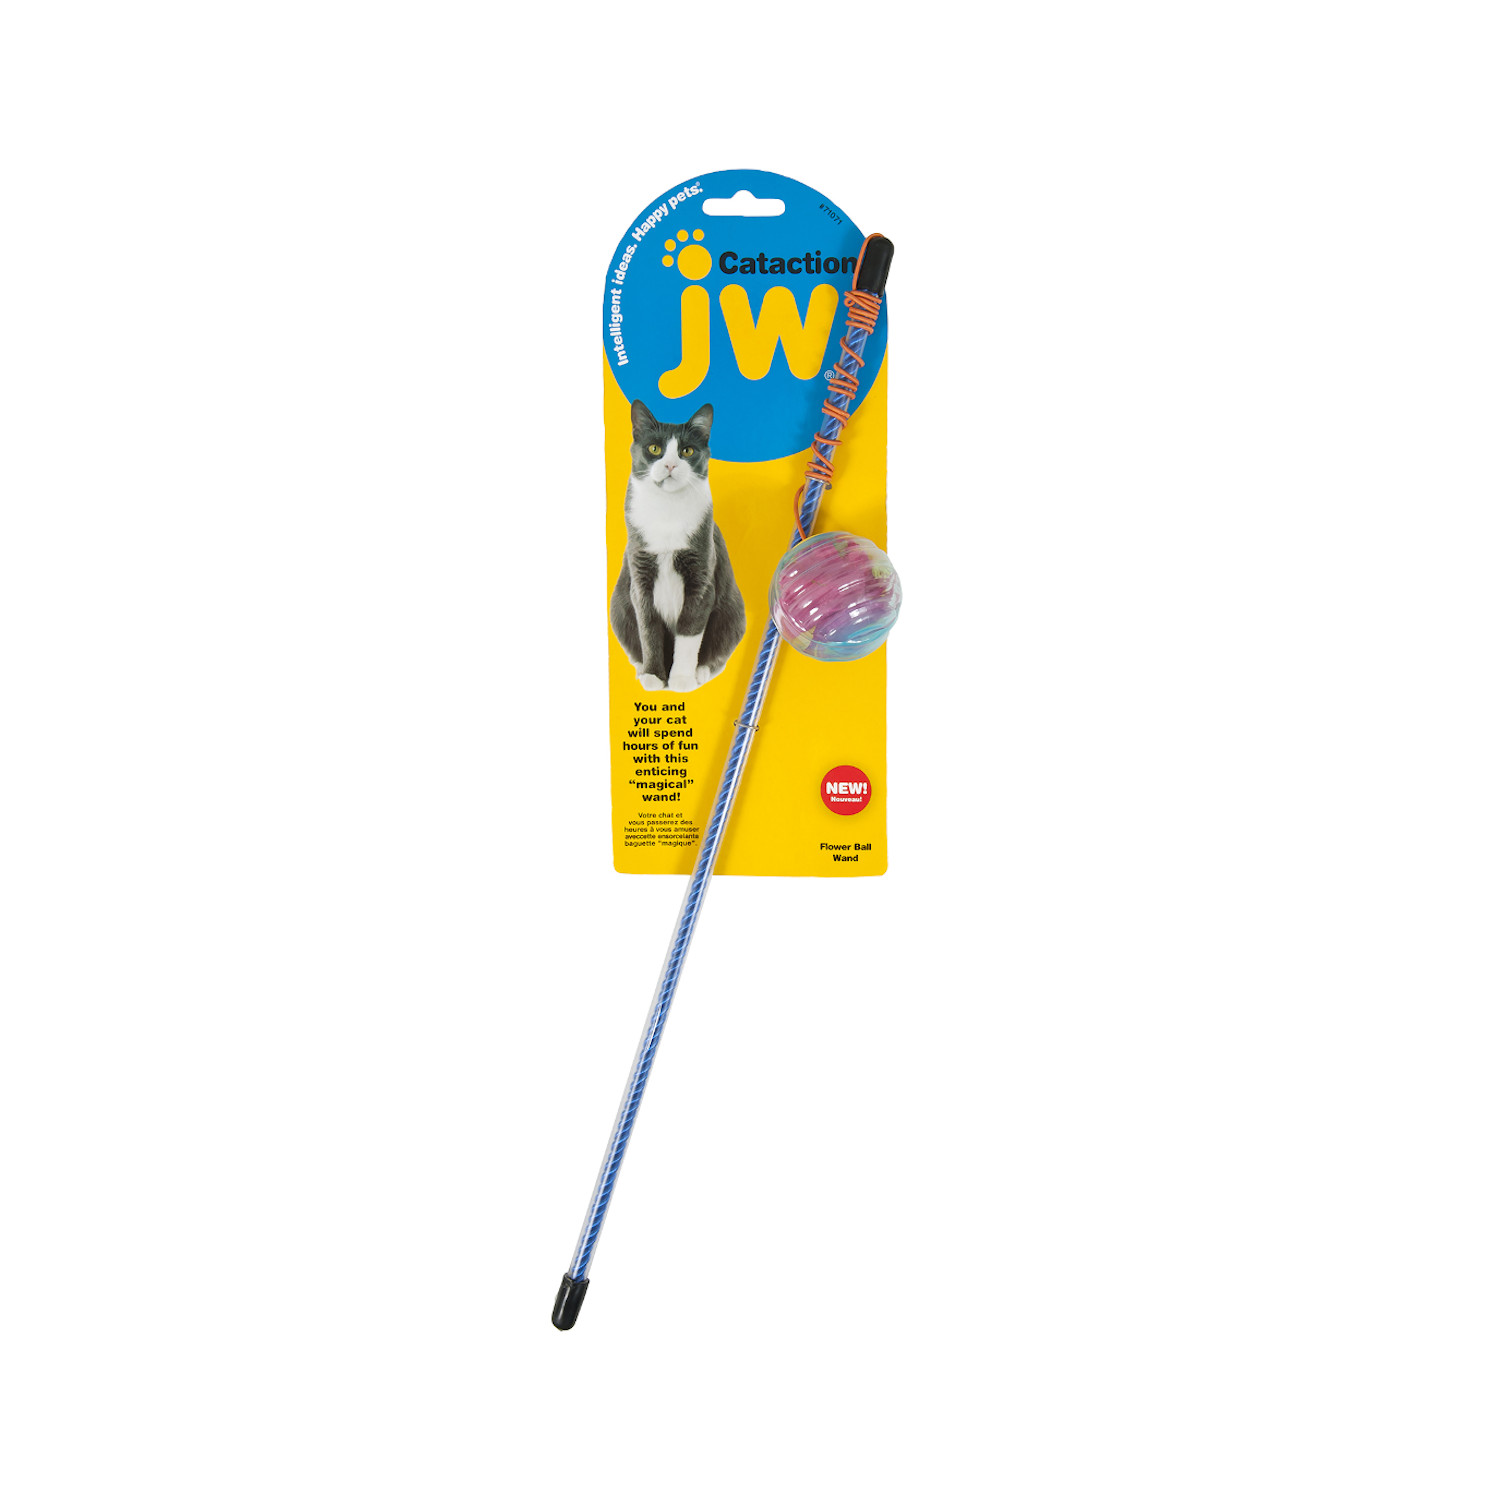 Flower Ball Wand - JW Cataction